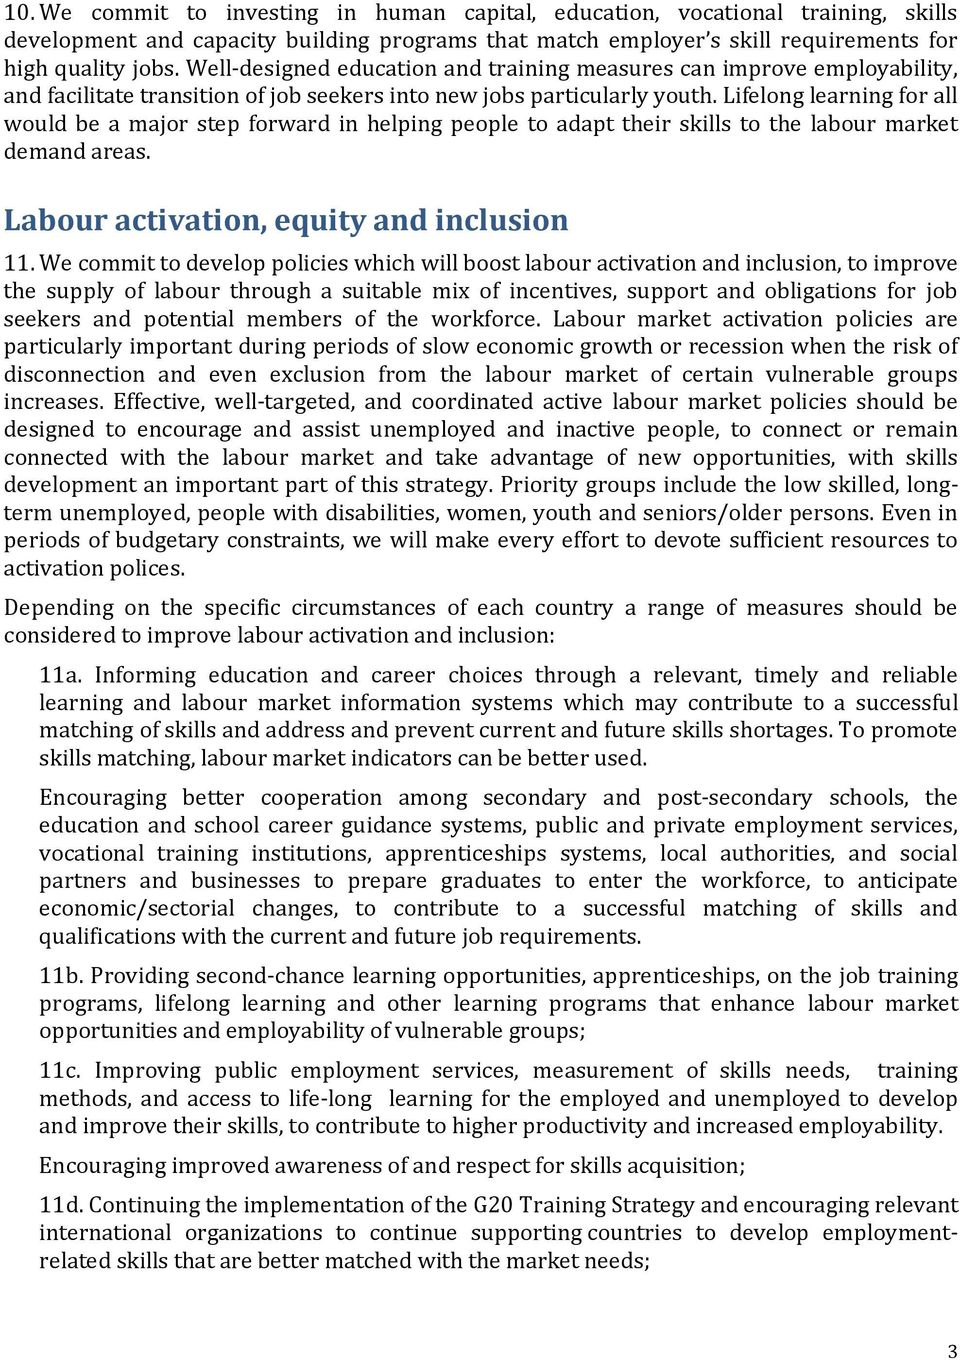 Lifelong learning for all would be a major step forward in helping people to adapt their skills to the labour market demand areas. Labour activation, equity and inclusion 11.